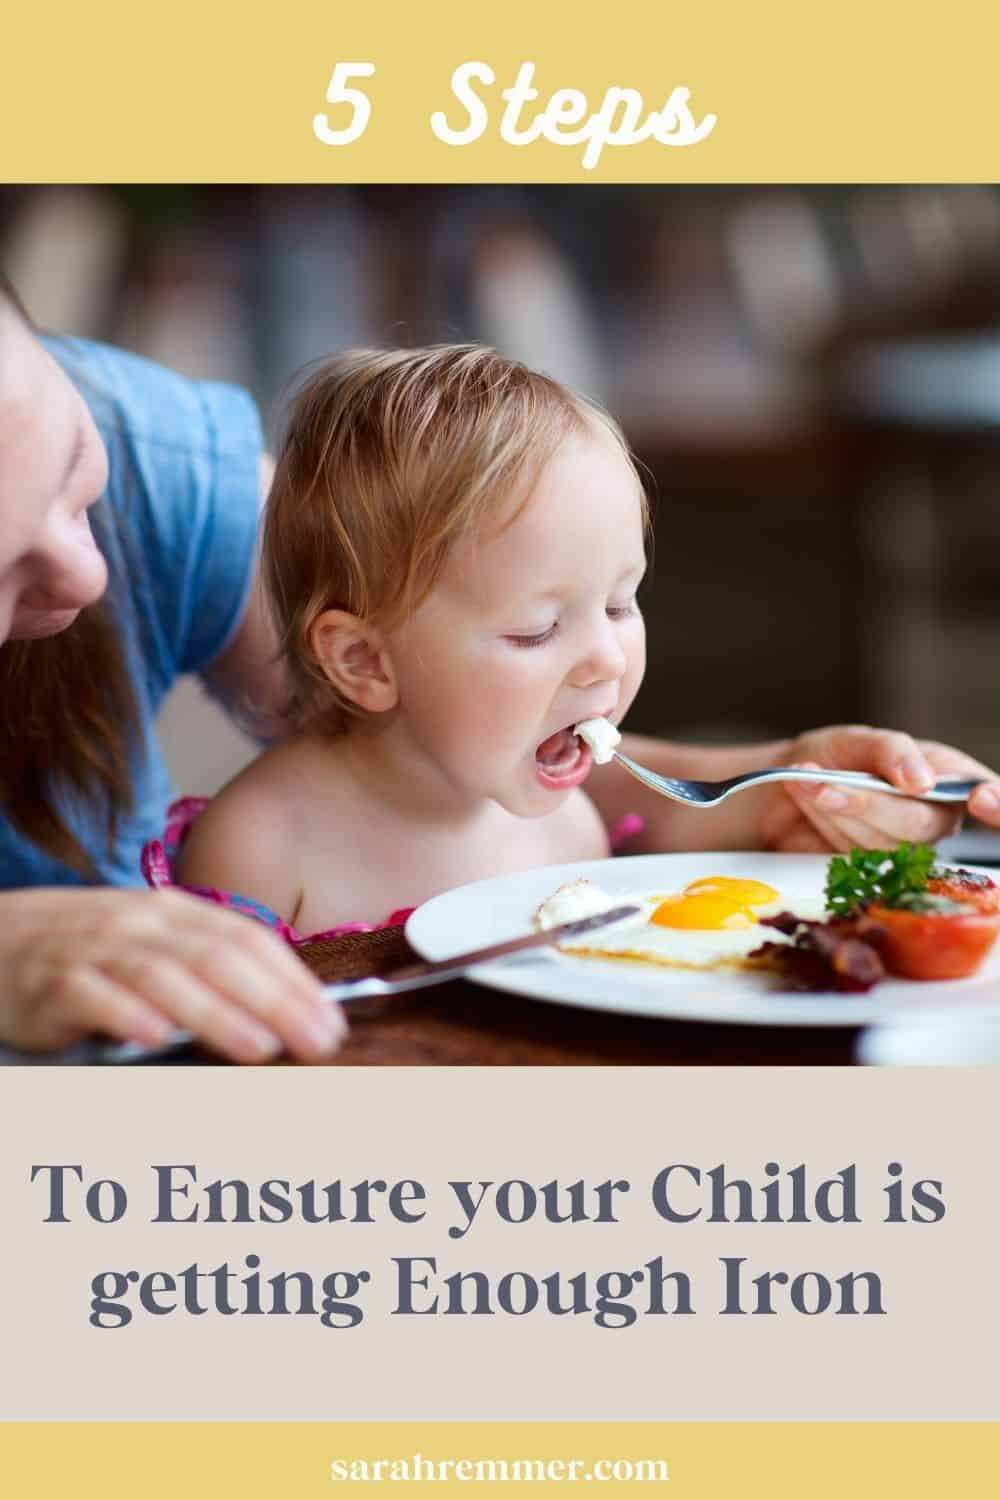 5 Steps to Ensure Your Child is Getting Enough Iron